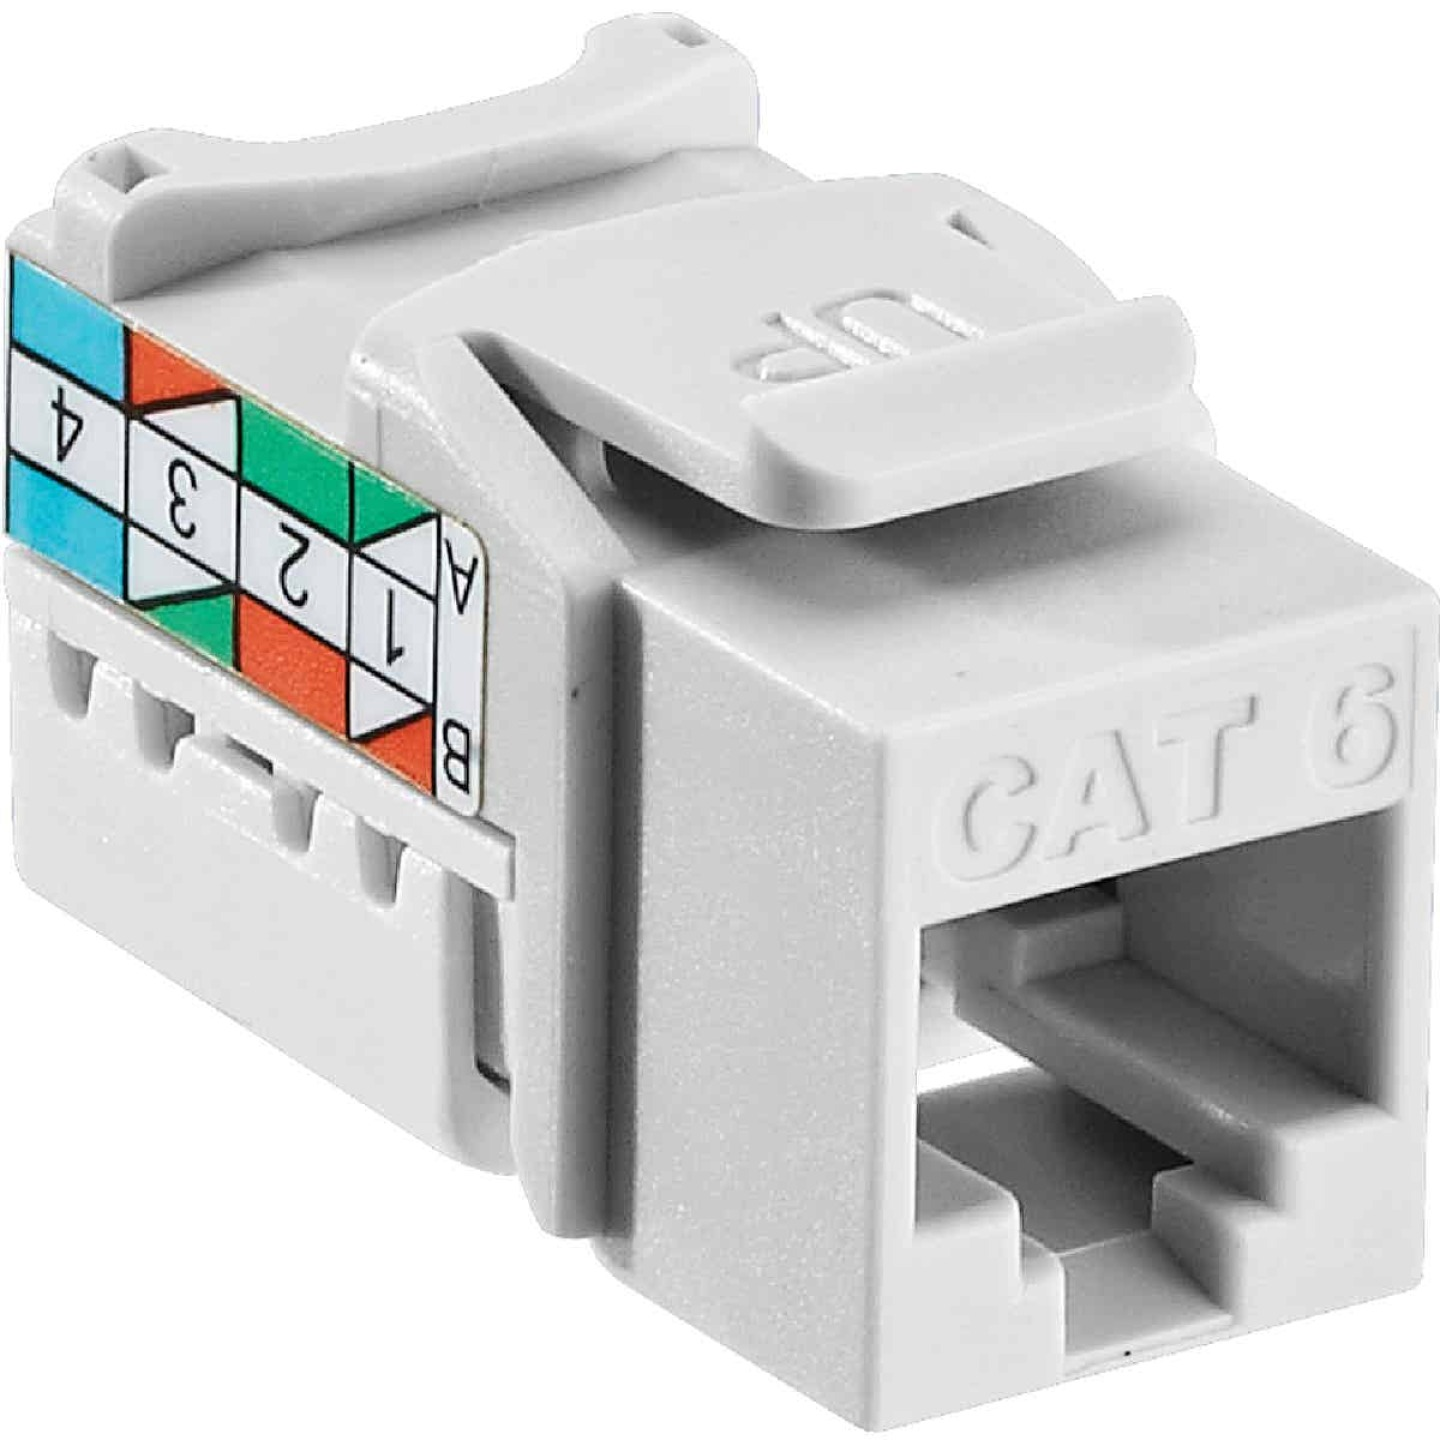 Leviton White 8-Conductor Cat-6 Connector Jack Image 1